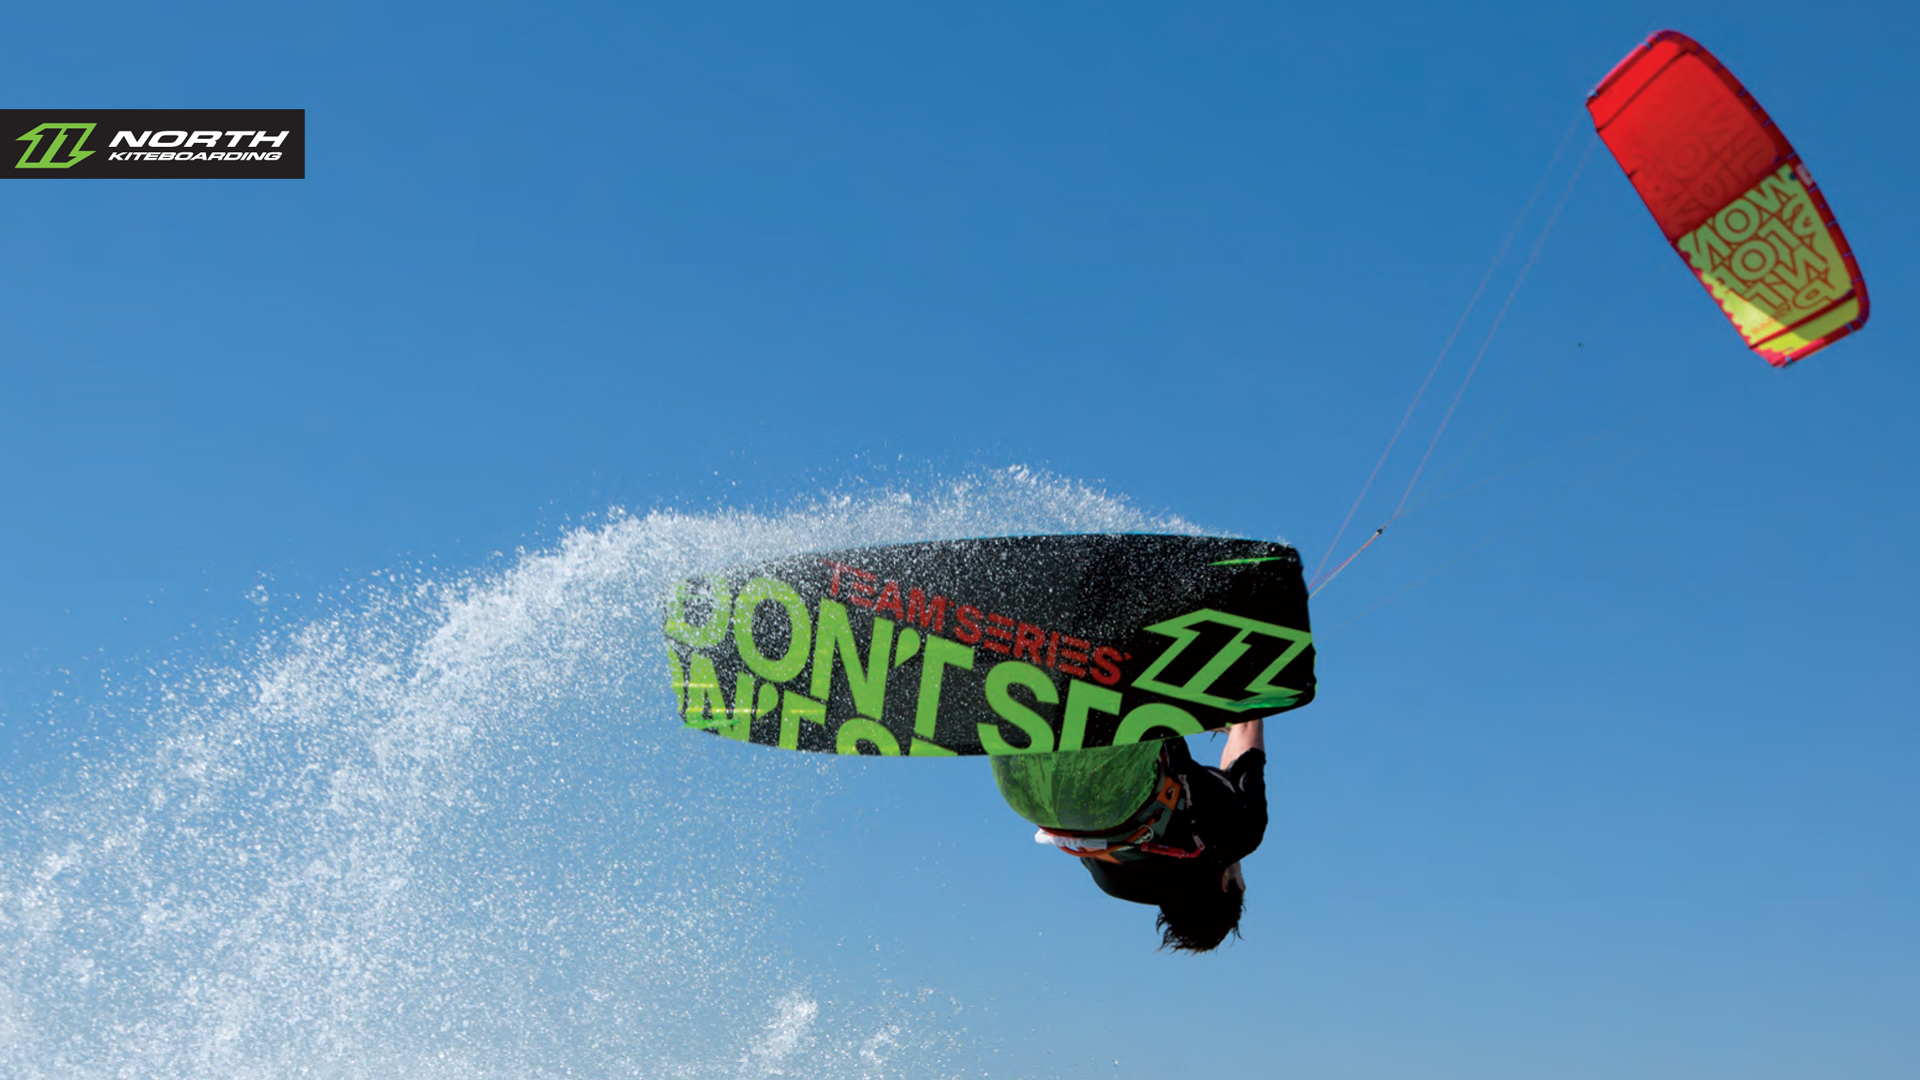 kitesurf wallpaper image - The 2015 North Vegas and team series board on holiday in the tropics - kitesurfing - in resolution: High Definition - HD 16:9 1920 X 1080